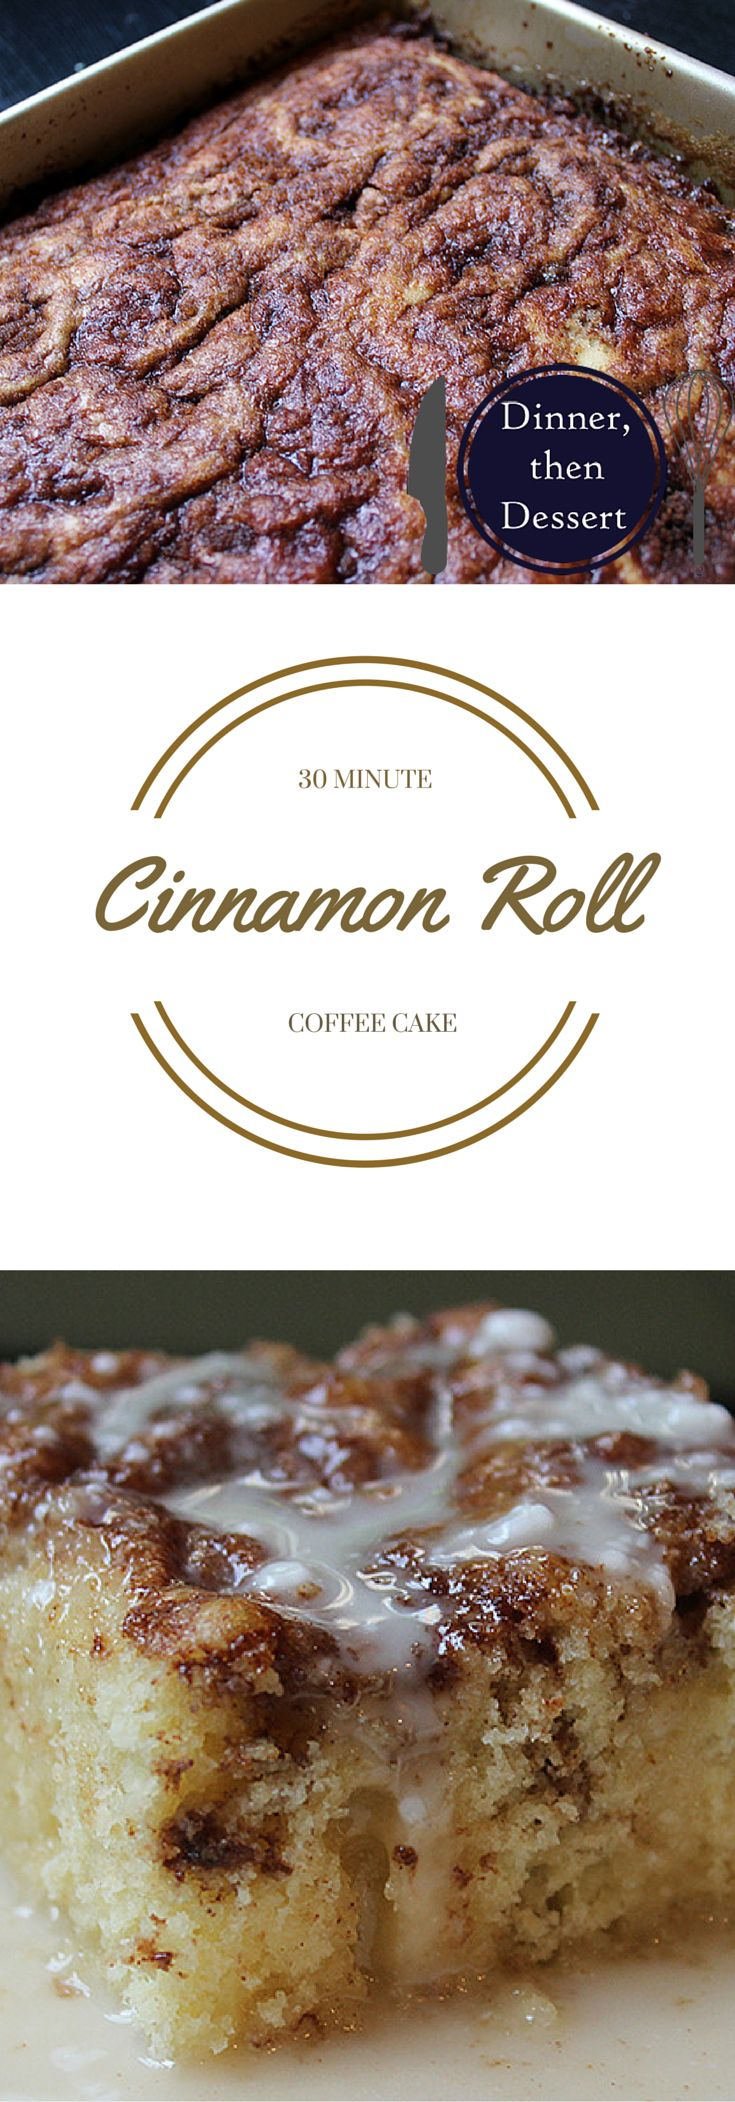 Ready in just 30 minutes, this cinnamon roll coffee cake has all the same flavors as cinnamon rolls but with 5% of the effort!